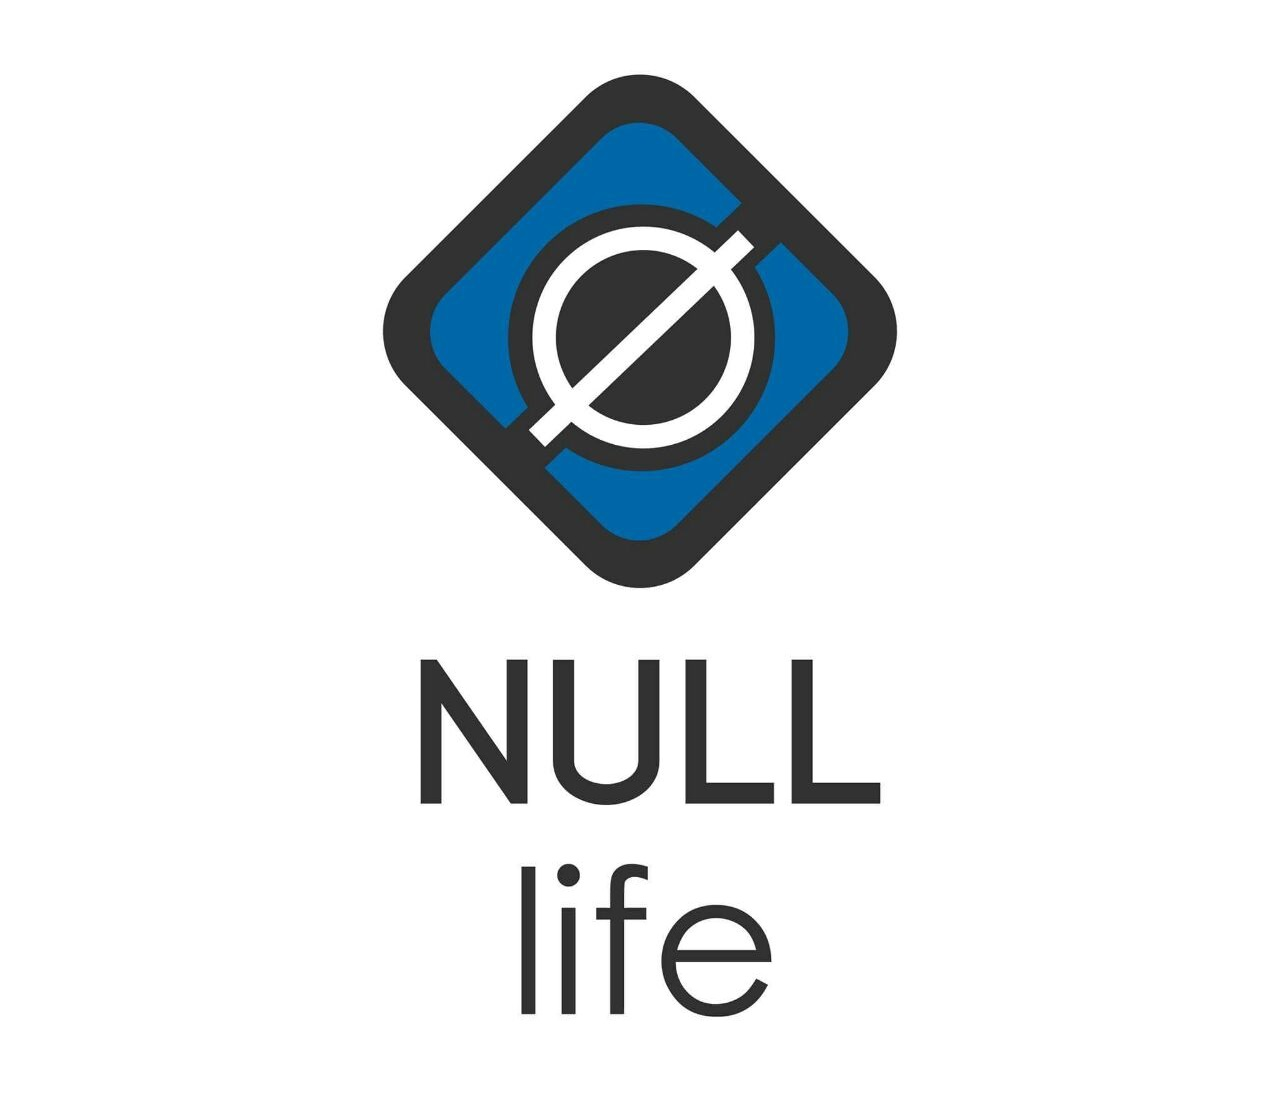 null Define null null synonyms, null pronunciation, null translation, english dictionary definition of null 1 having no legal force invalid: render a contract null and void 2 of no consequence, effect, or value.